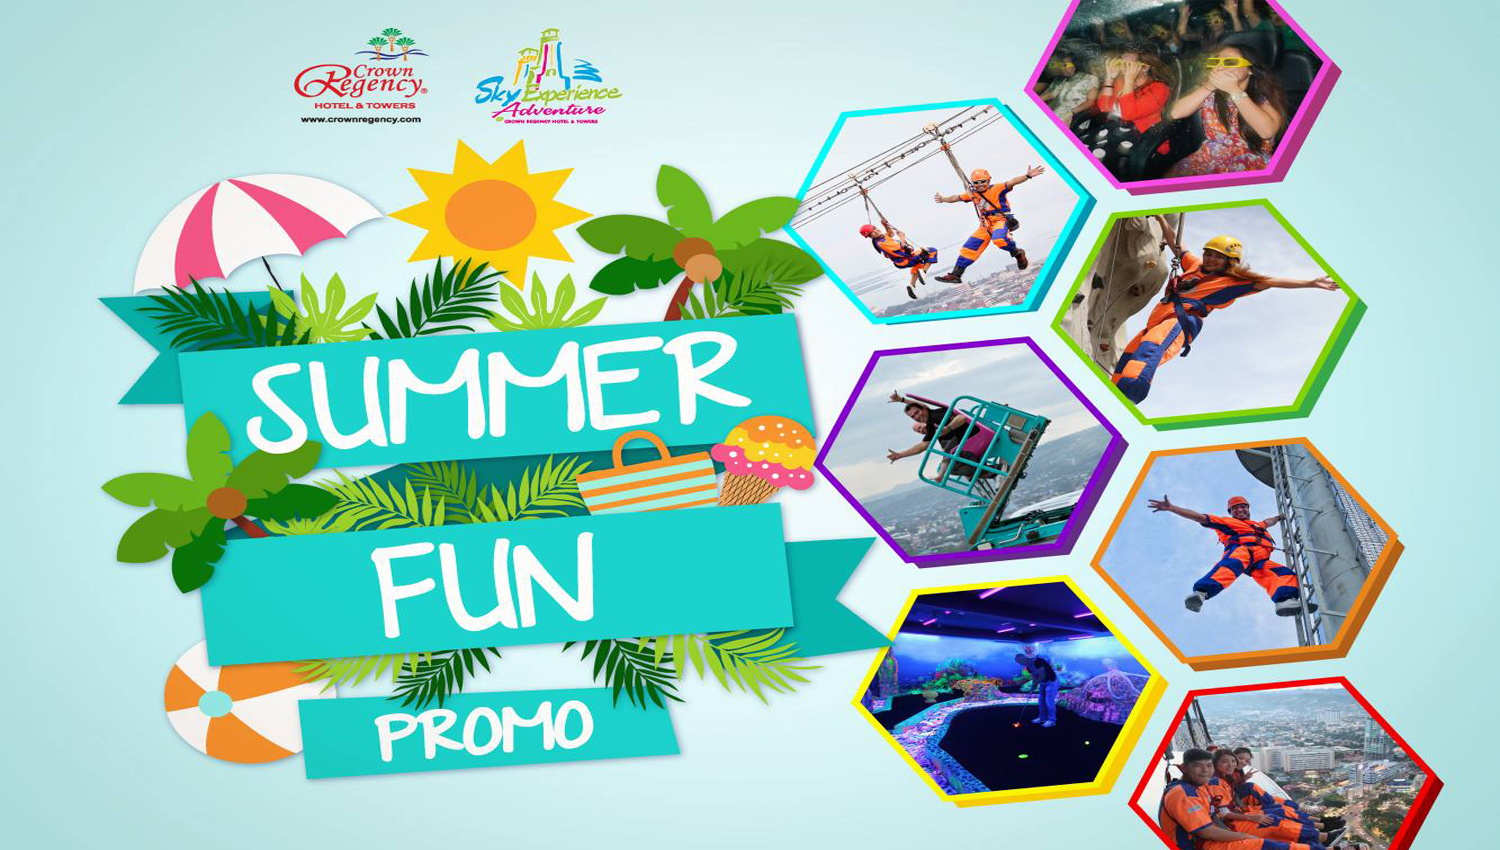 Sky Experience Adventure's Summer Fun promo